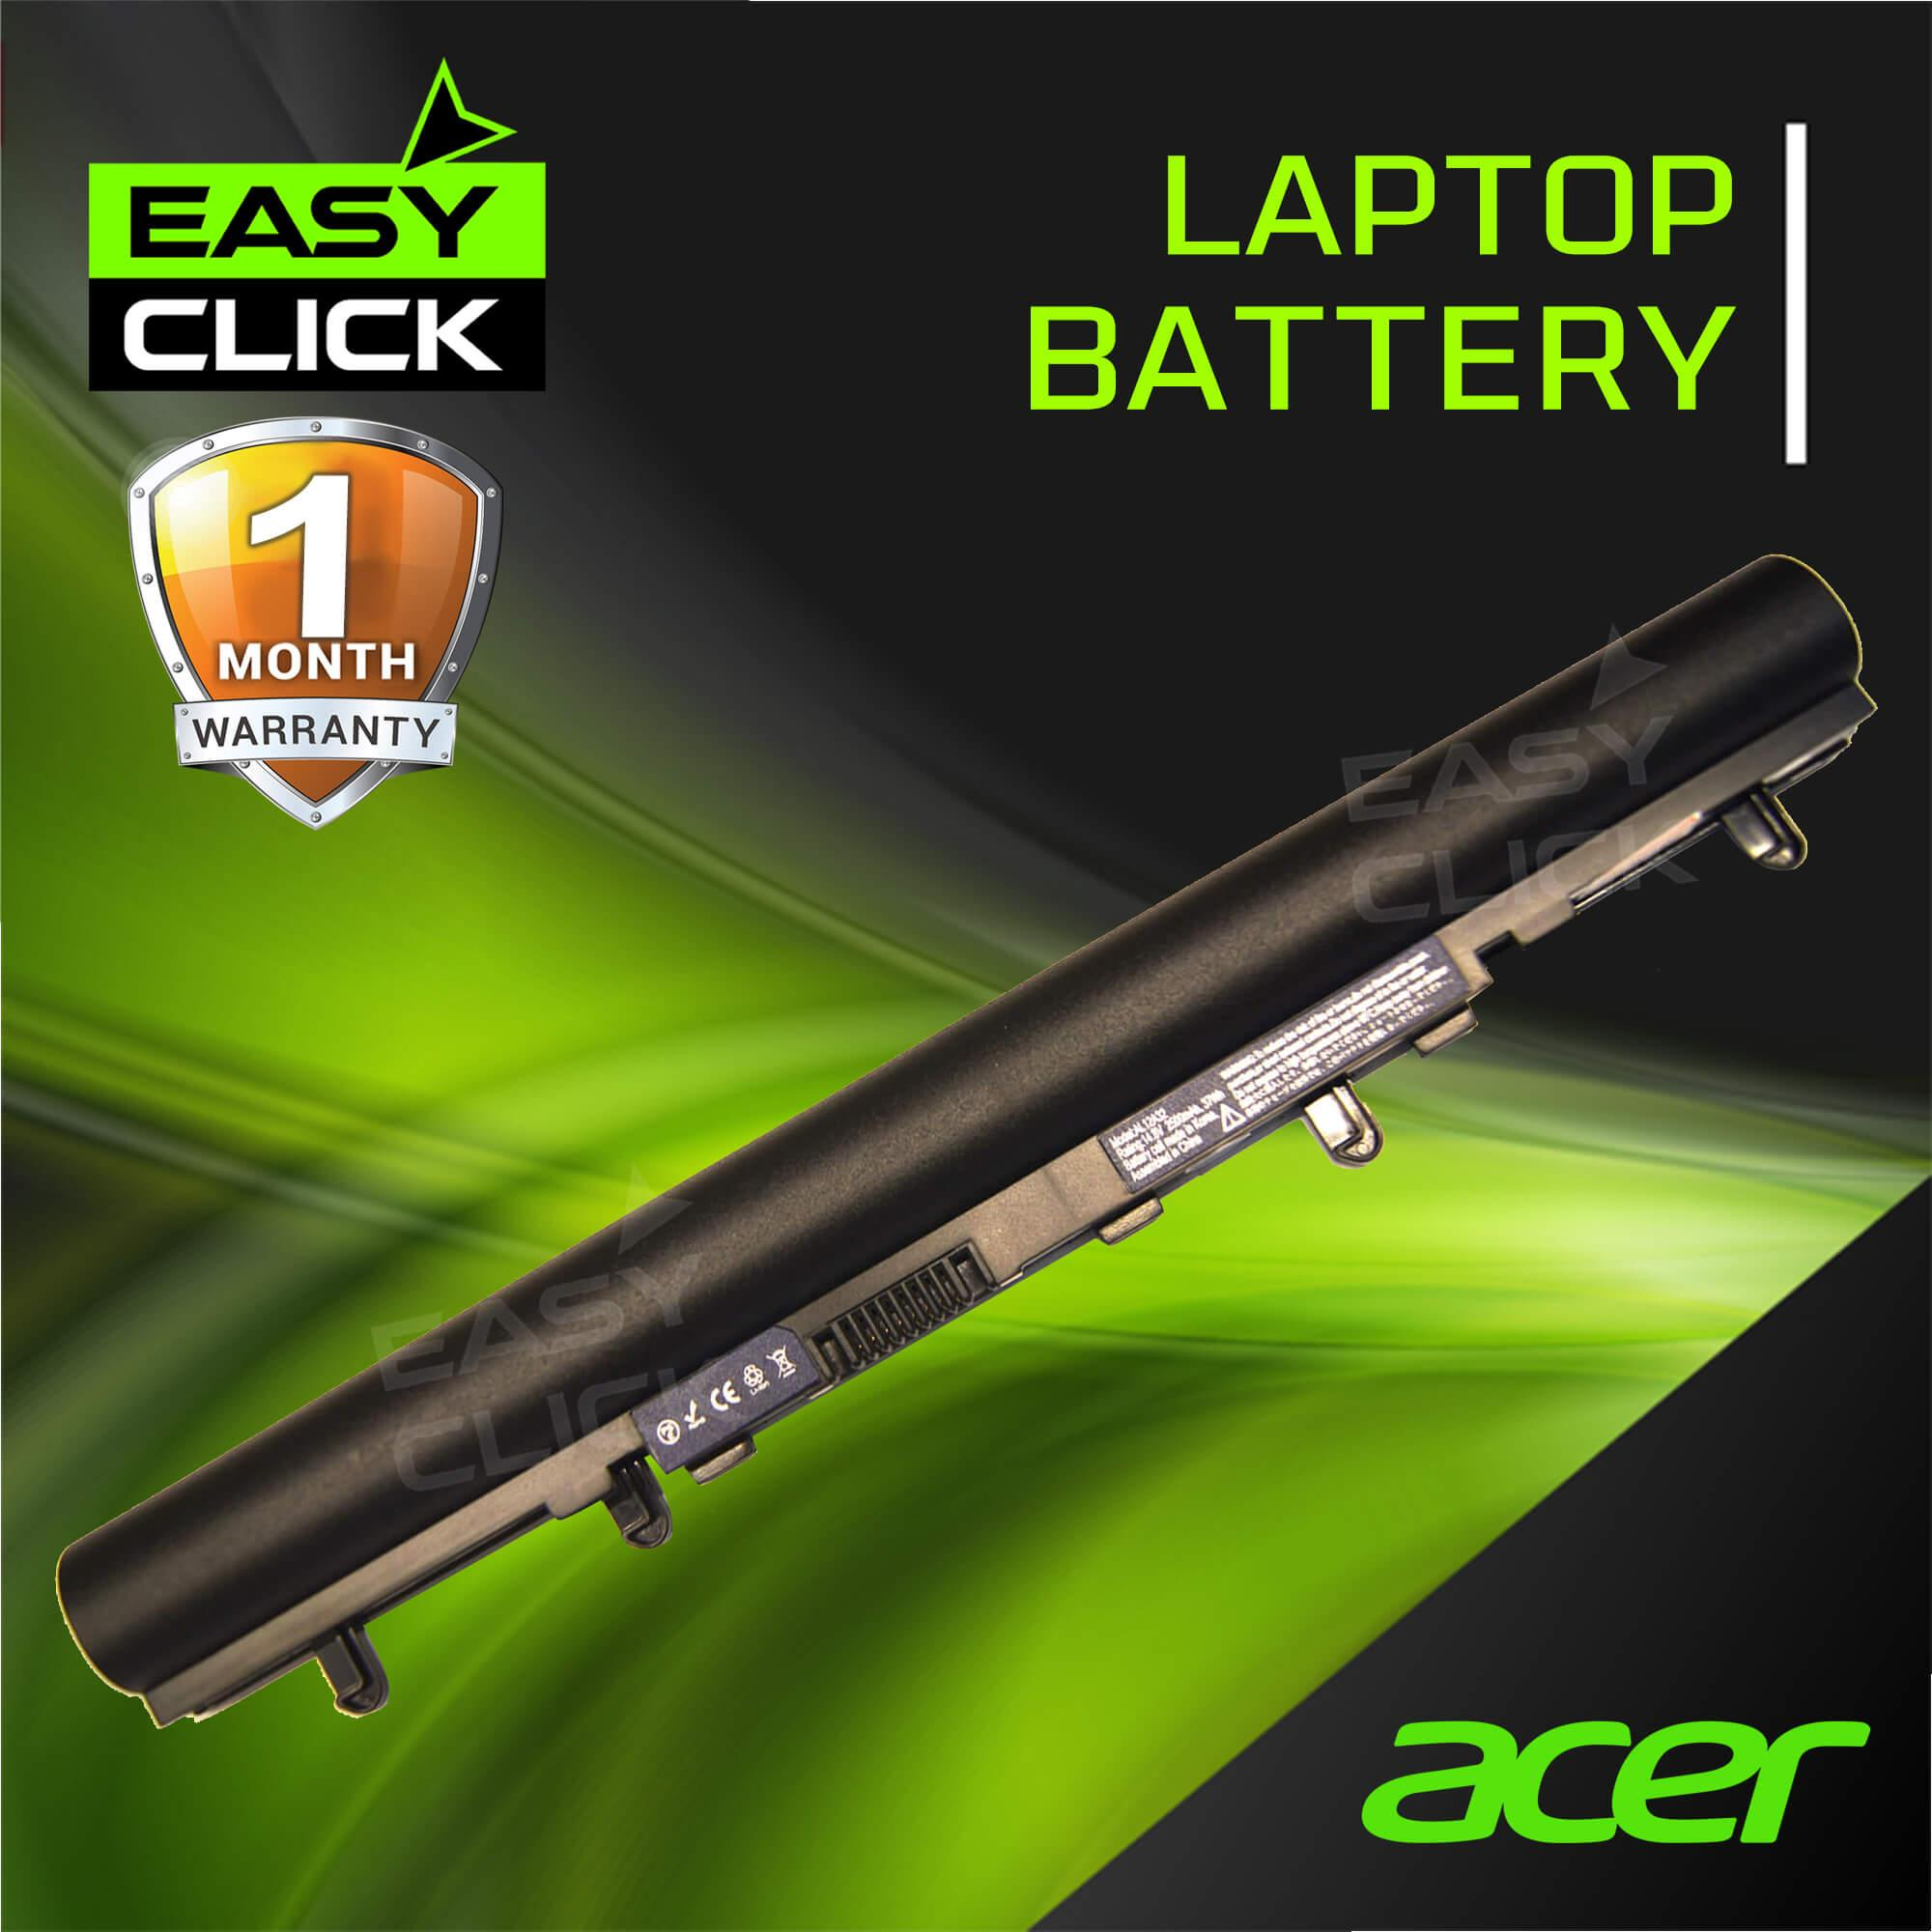 Acer Philippines Computer Batteries For Sale Prices Adaptor Charger Laptop Aspire 4739 4738 4741 4750 4736 4752 4740 Battery V5 431 Al12a32 471 531